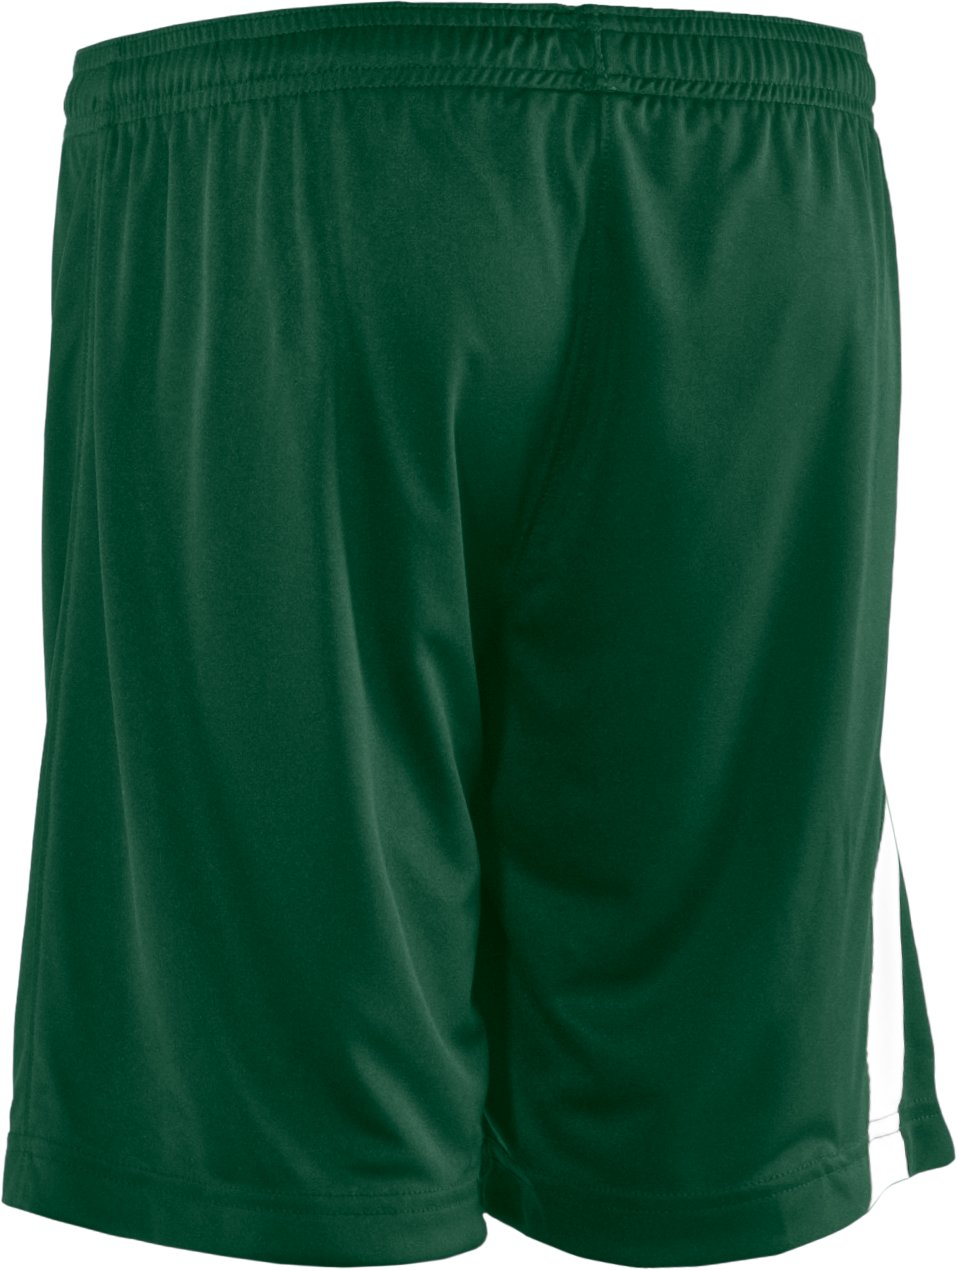 "Boys' UA Chaos 7"" Soccer Shorts, Forest Green, zoomed image"